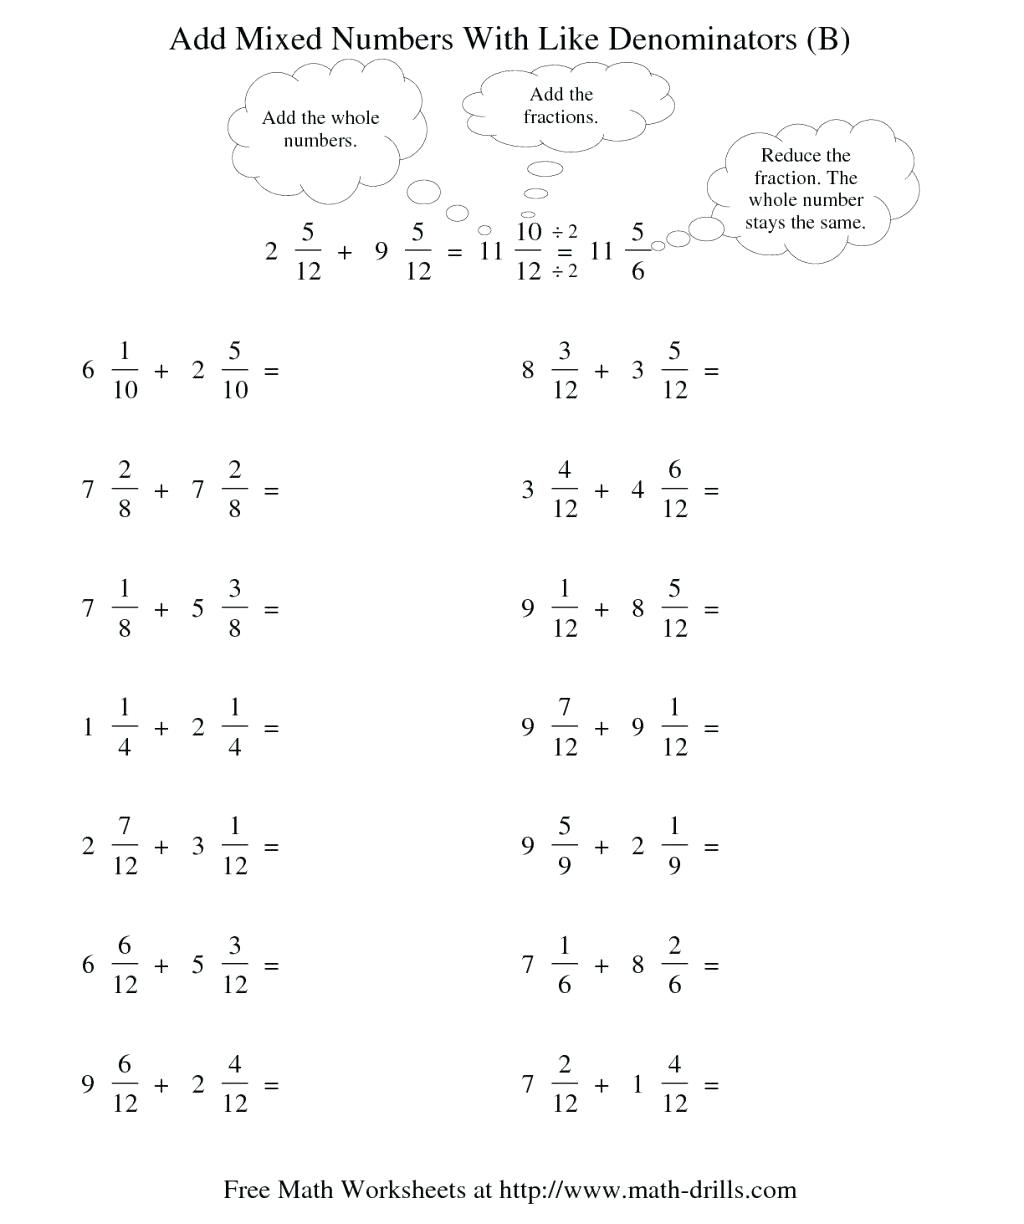 hight resolution of Reducing Fractions Worksheet 5th Grade   Printable Worksheets and  Activities for Teachers